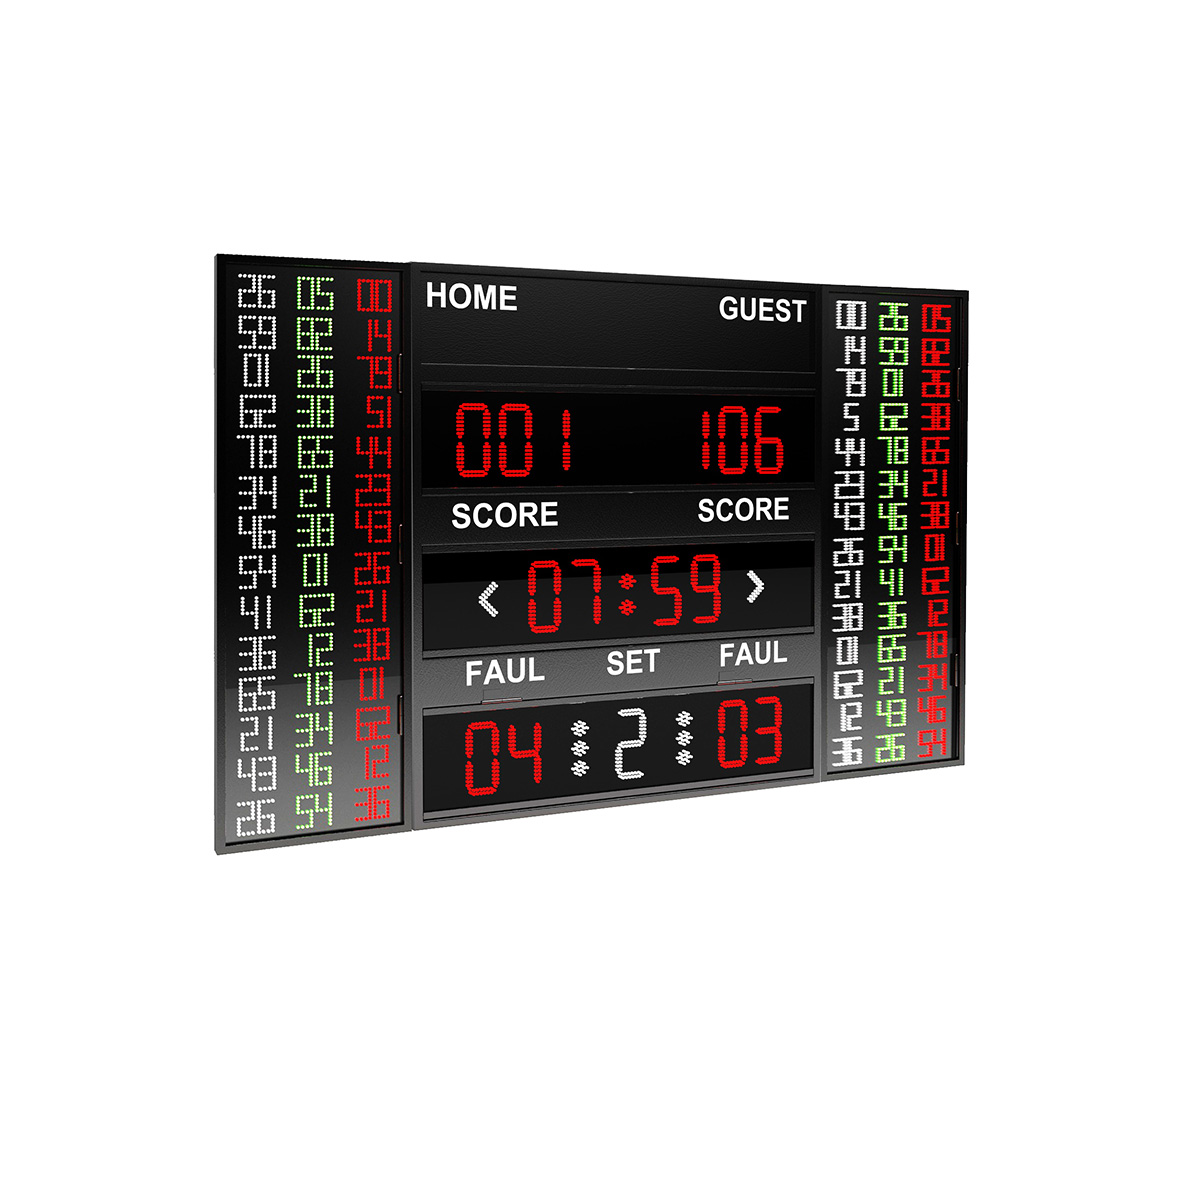 BS 149 BASIC NBA TİPİ SKORBORD